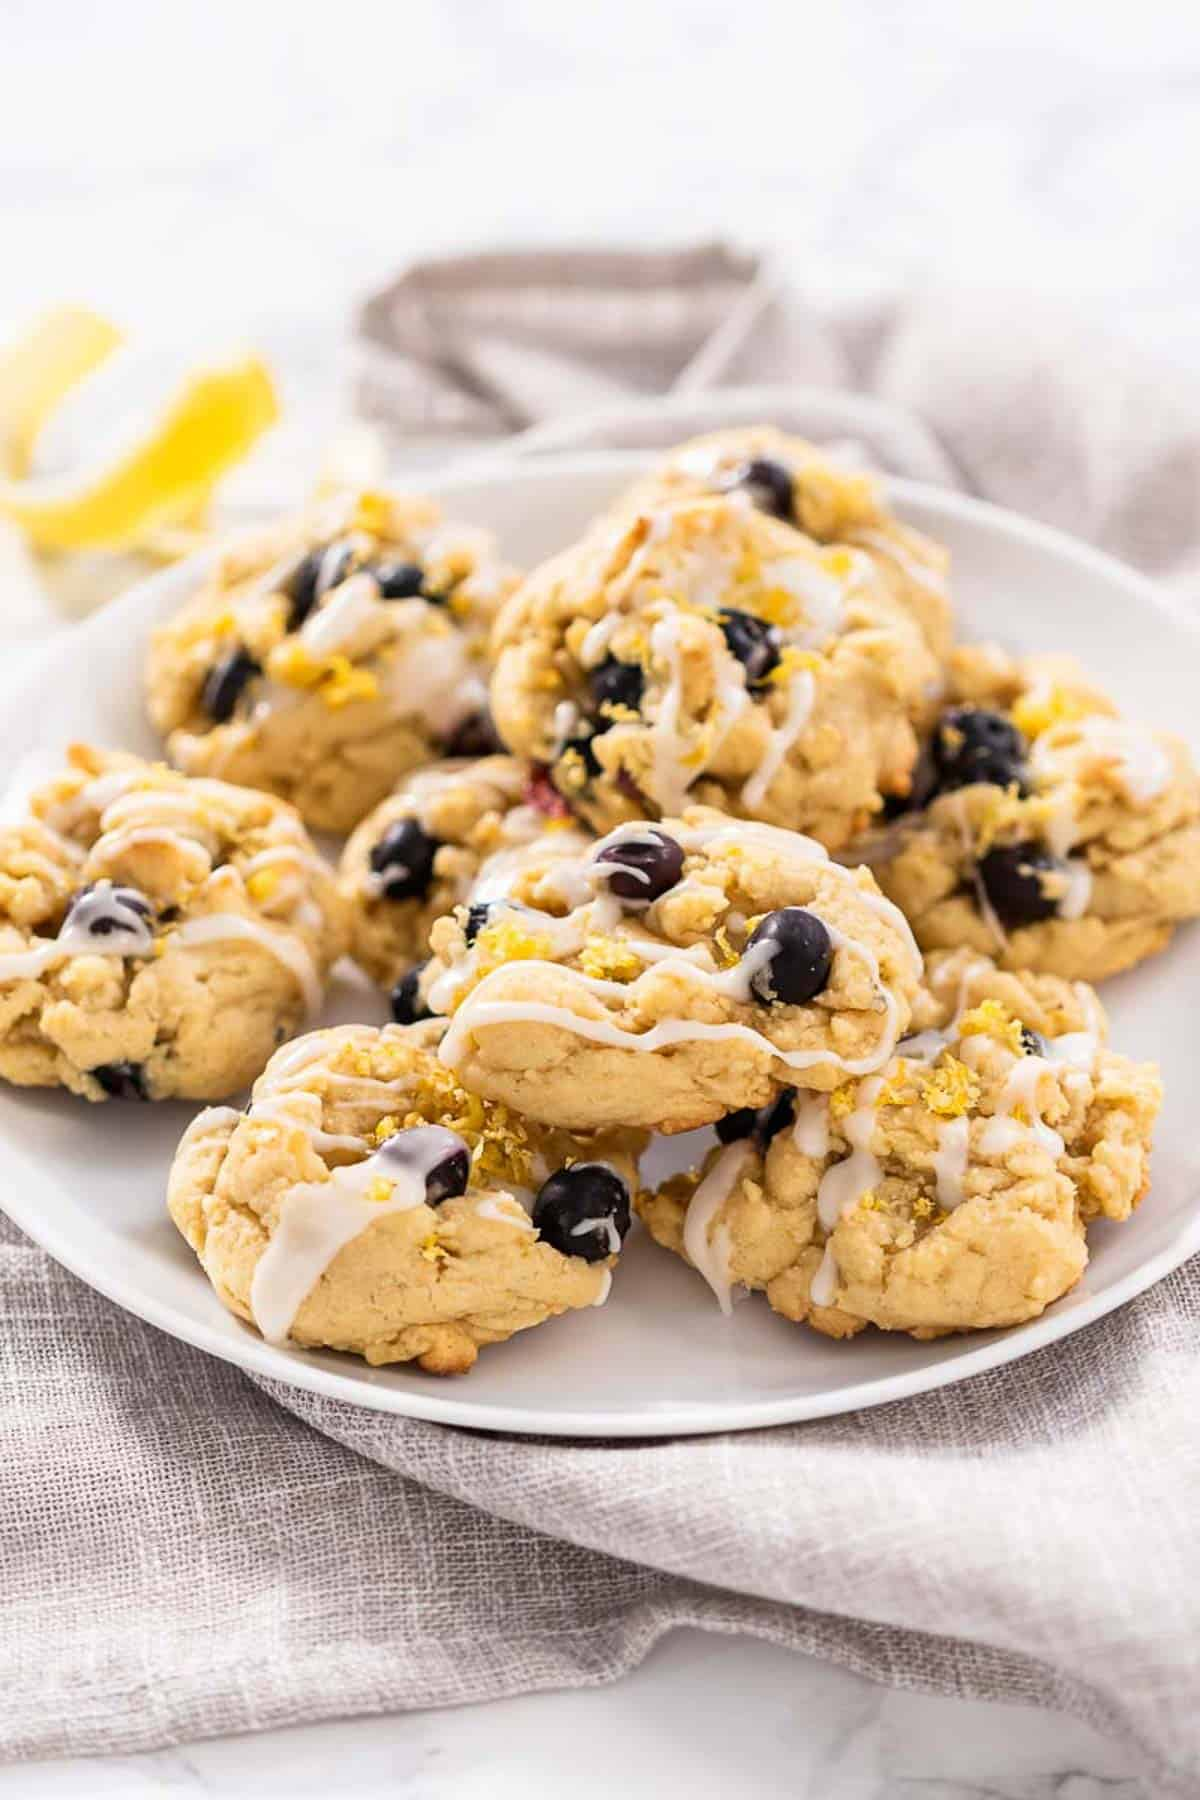 A plate of blueberry lemon cookies with icing drizzled on top sitting upon a grey kitchen towel.